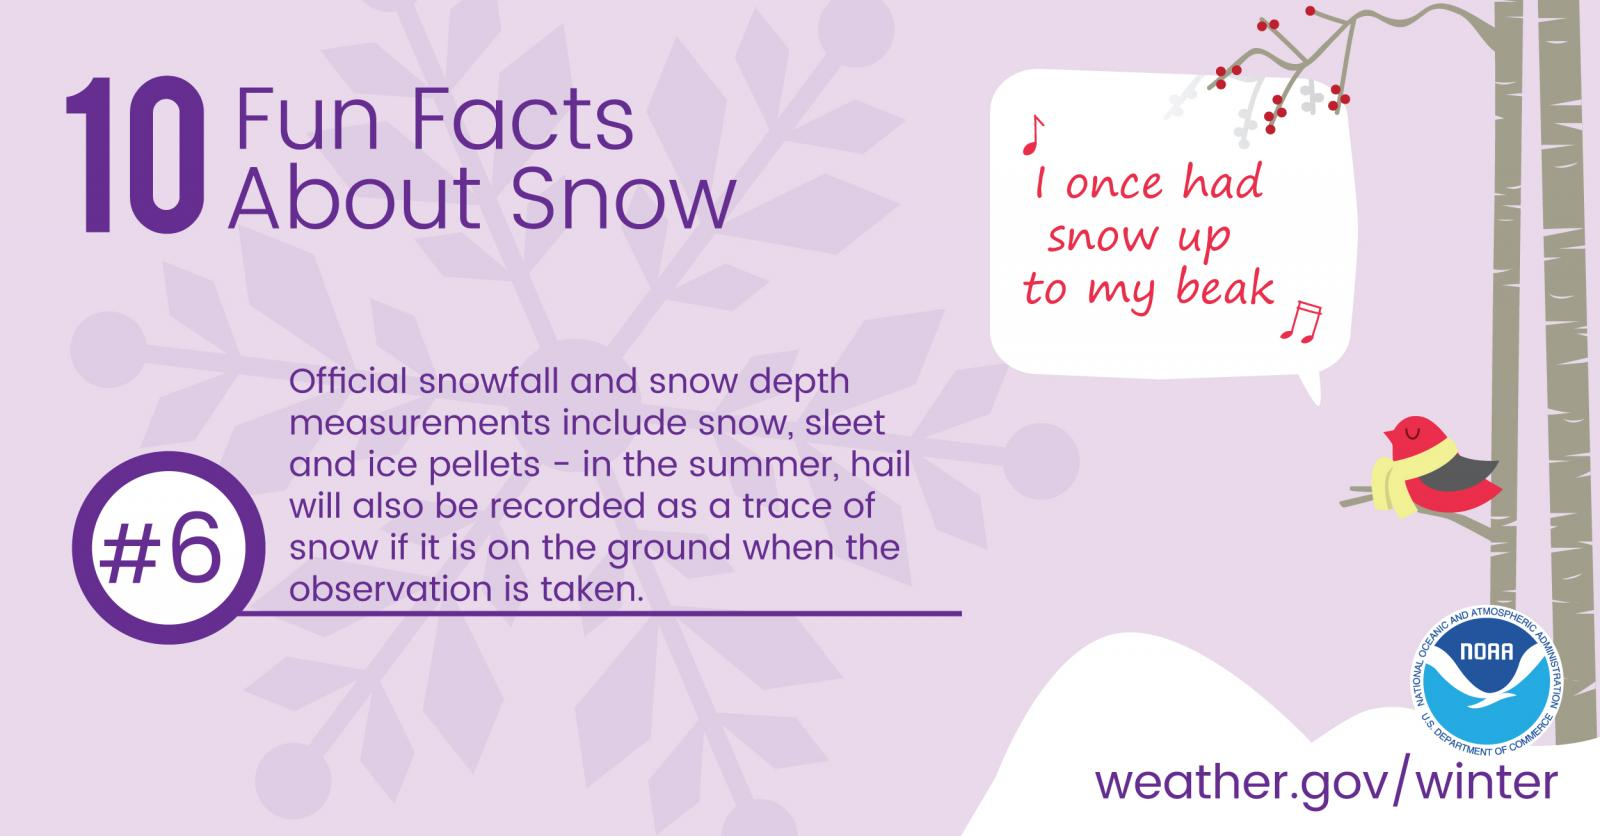 10 Fun Facts About Snow: #6. Official snowfall and snow depth measurements include snow, sleet and ice pellets - in the summer, hail will also be recorded as a trace of snow if it is on the ground when the observation is taken.